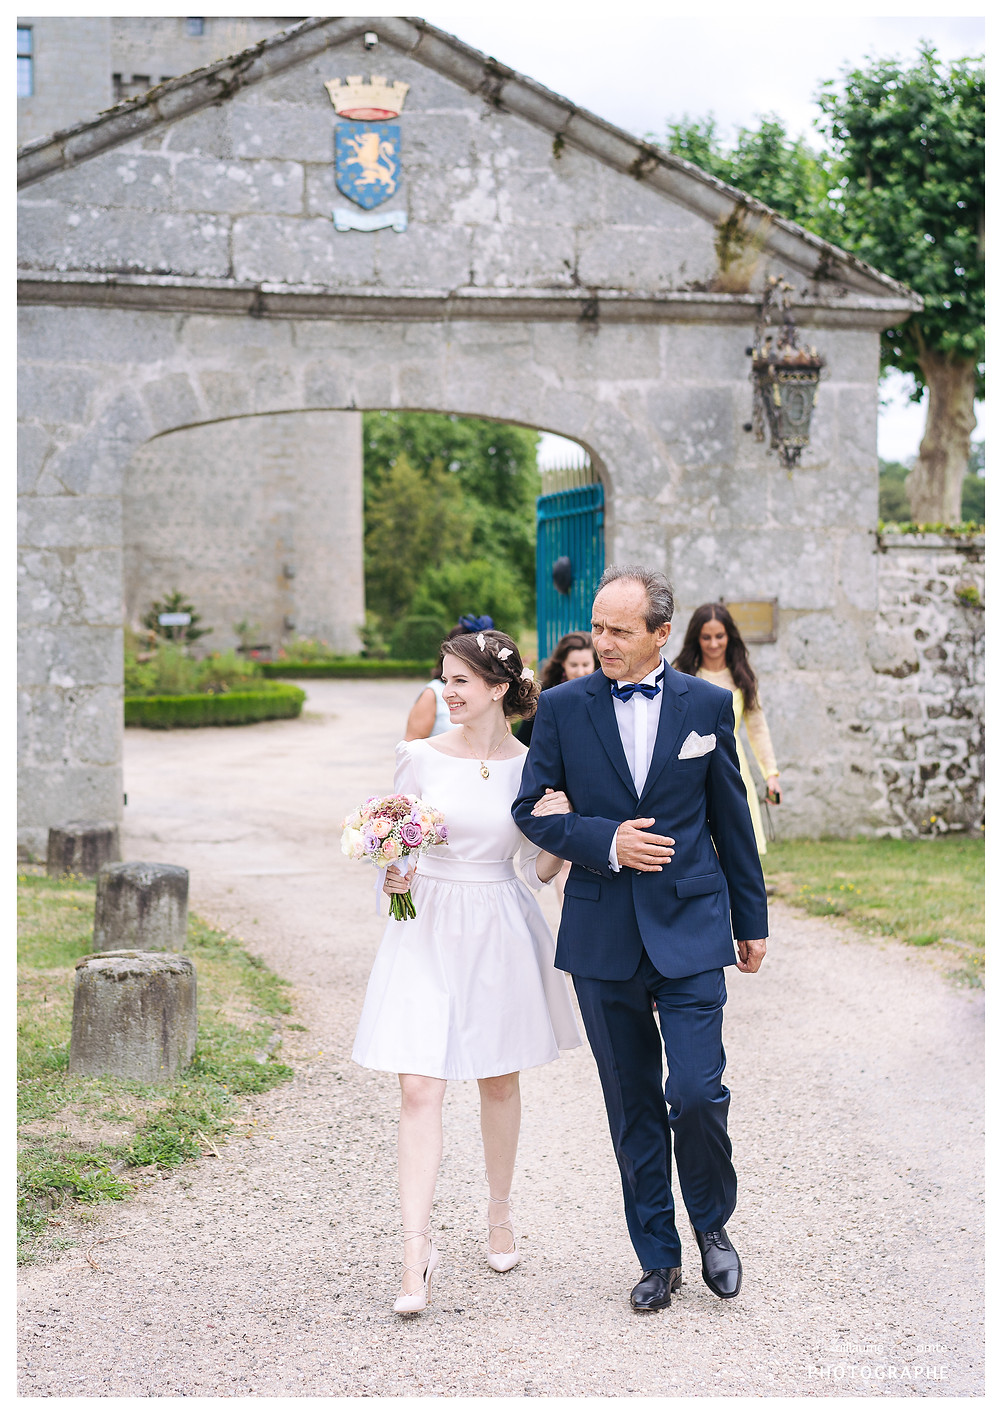 Photographe Mariage Wedding Limoges Limousin Guillaume Comte